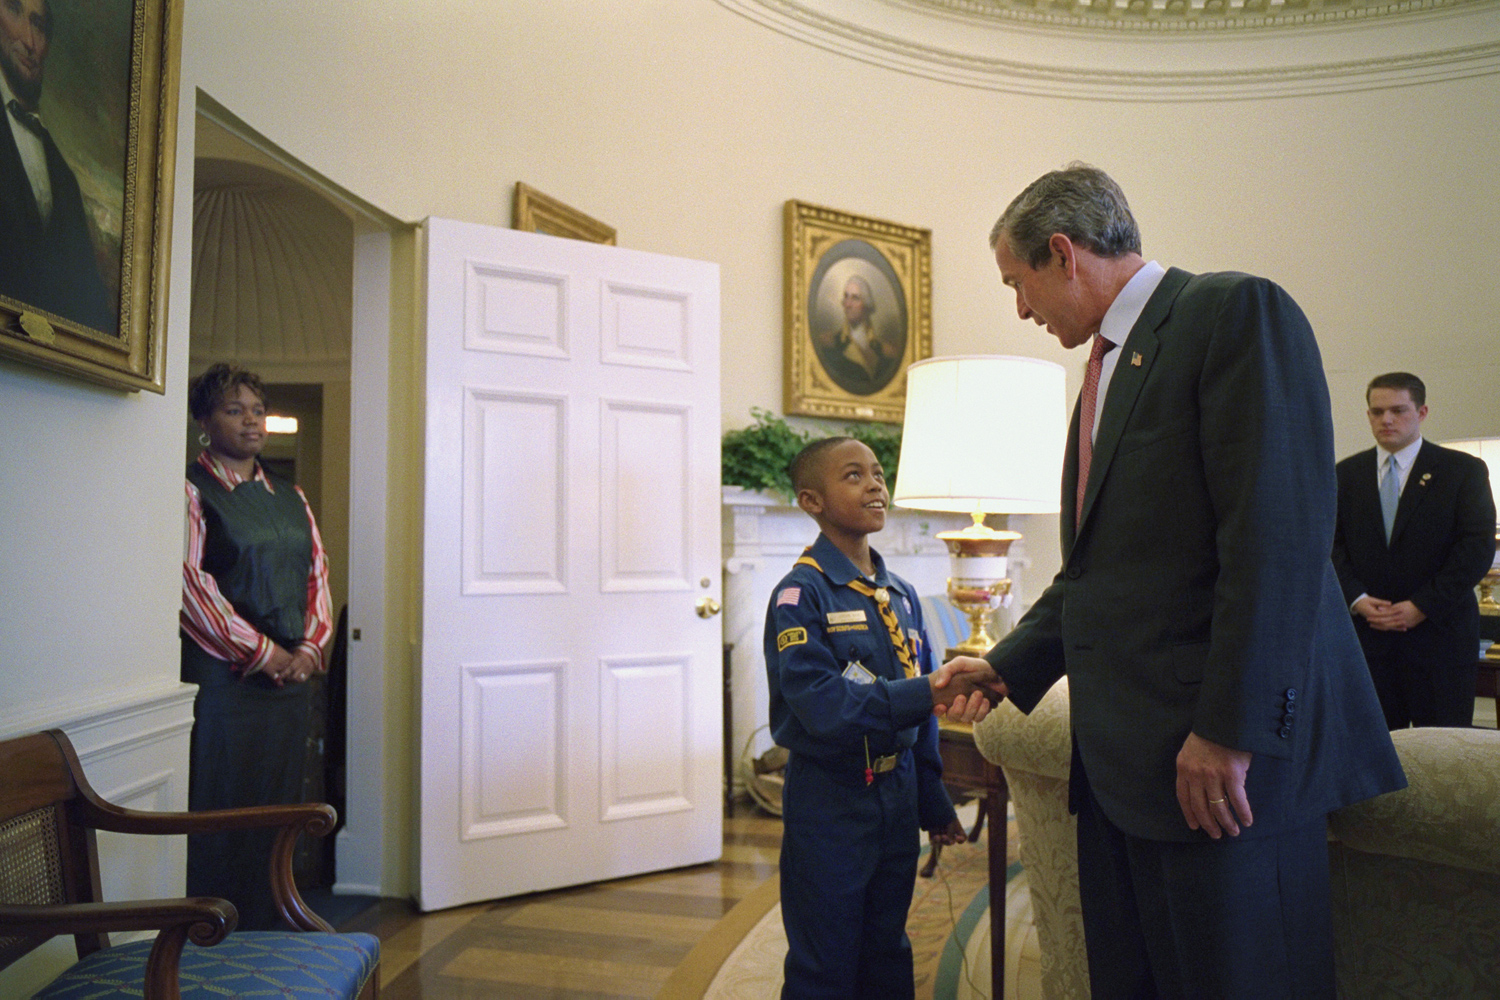 "Feb. 12, 2002. President Bush shakes hands with nine-year-old Cub Scout Jordon Wade of Pittsburgh, Pennsylvania, as he welcomes him to the Oval Office for the presentation of the Boy Scouts of America report to the Nation. Jordon's mother, Monica Jackson, looks on. ""It was a tender, sweet moment. The little boy seemed very respectful of the president, but shy. It was his big moment. The president made him comfortable with a warm, direct look. He had a way of doing that with visitors."""